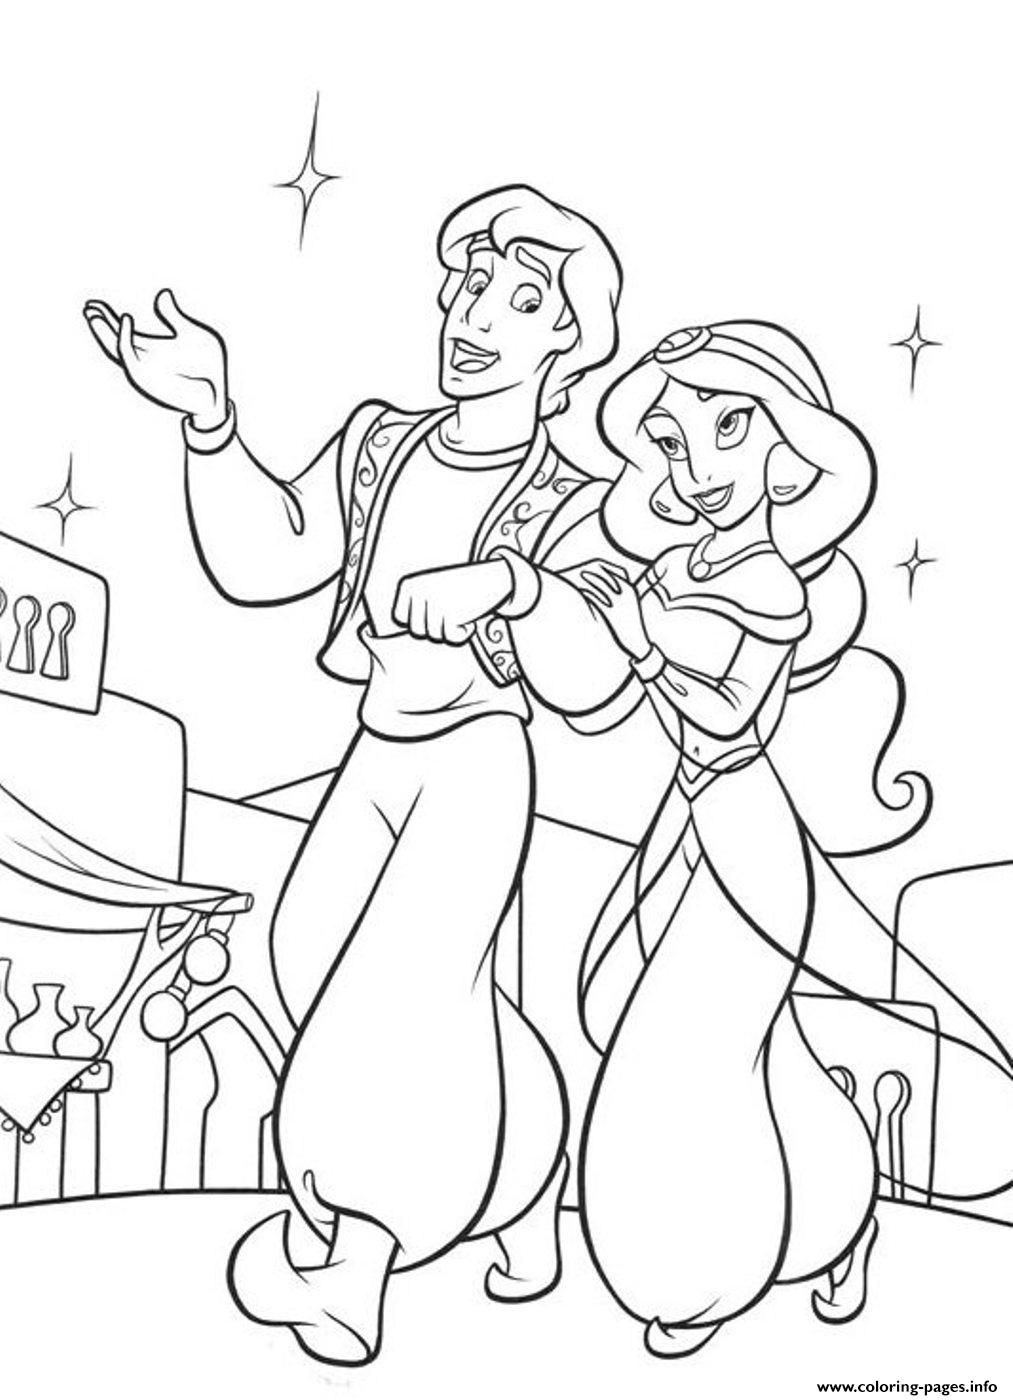 Aladdin  Disneys2bb1 coloring pages